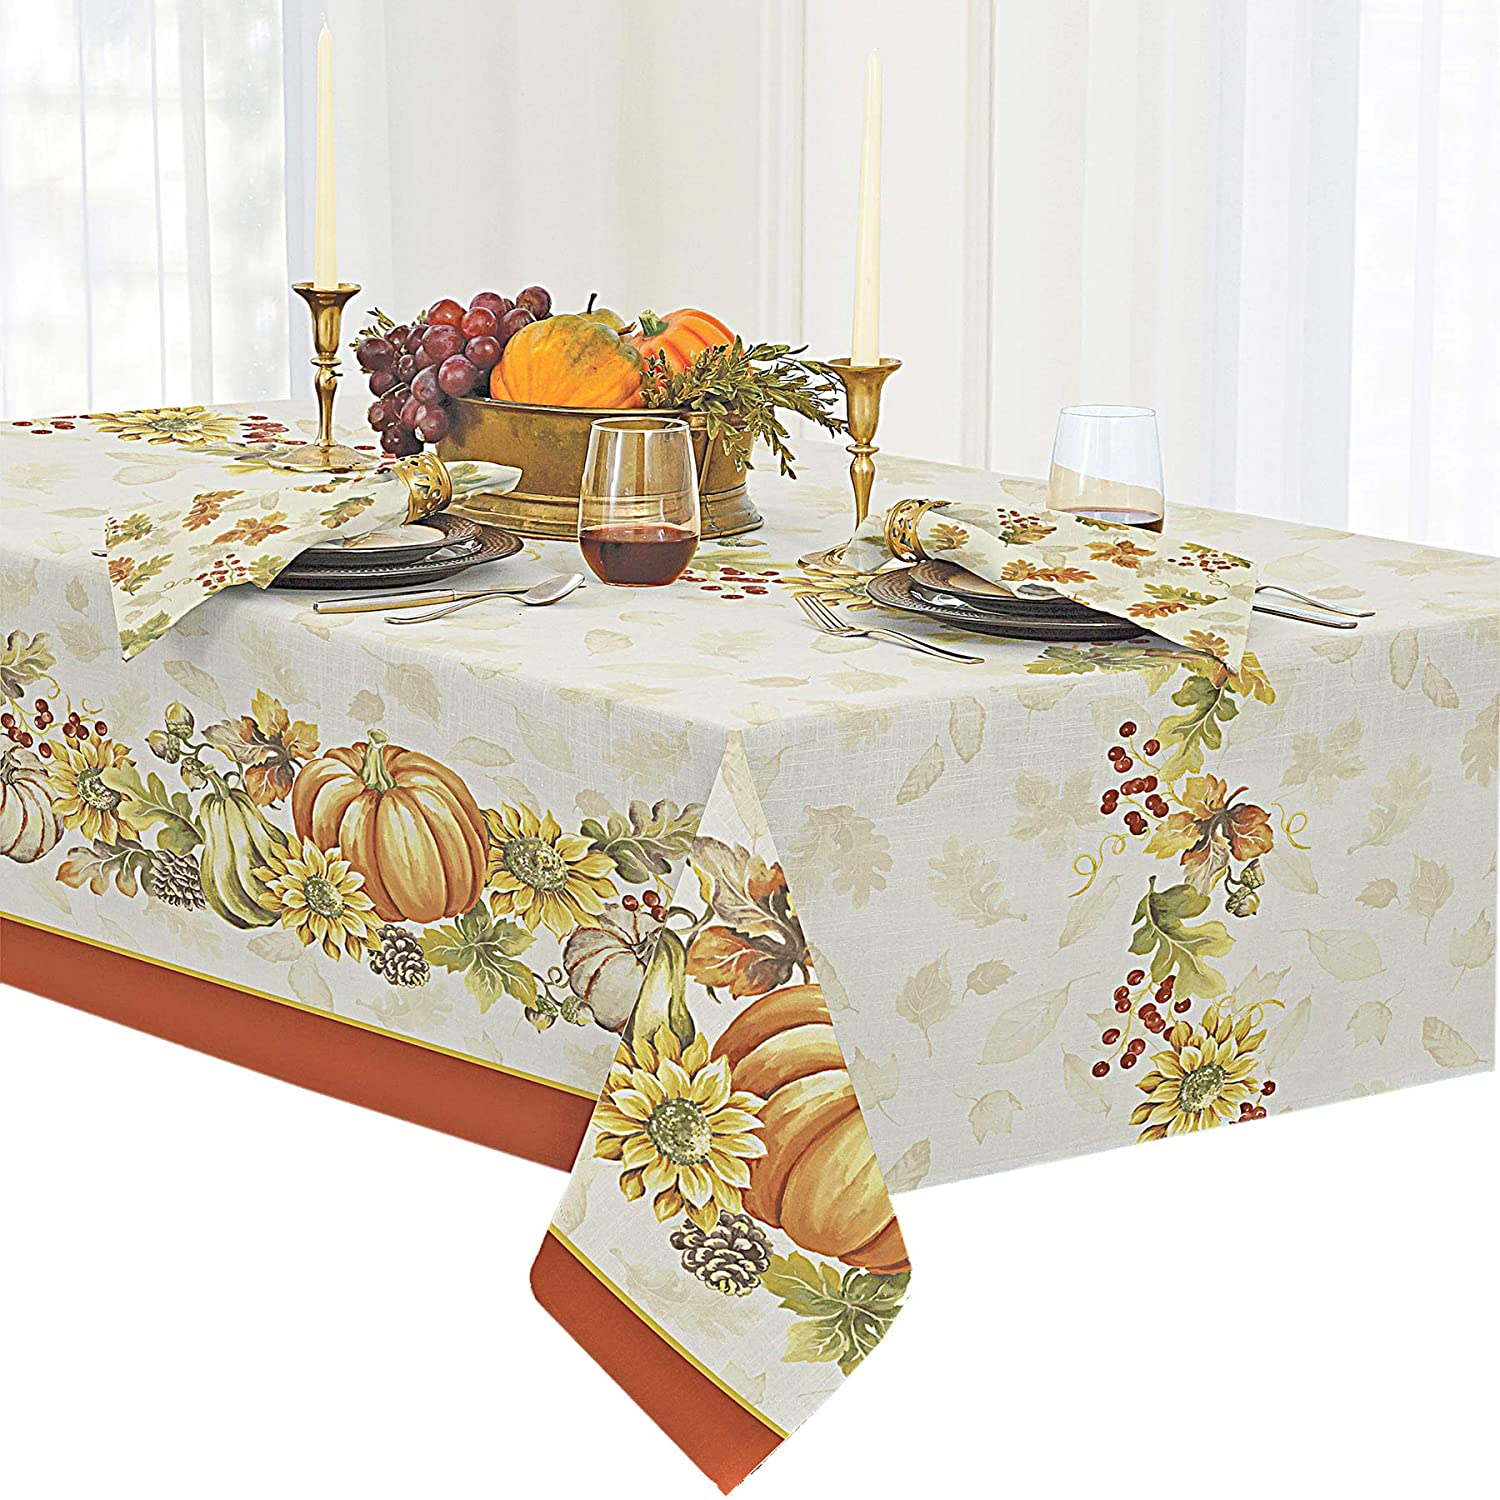 Newbridge Brilliant Autumn Double Border Thanksgiving Fabric Napkin Set, Fall Harvest Floral Napkins, Set of 8 Fabric Napkins